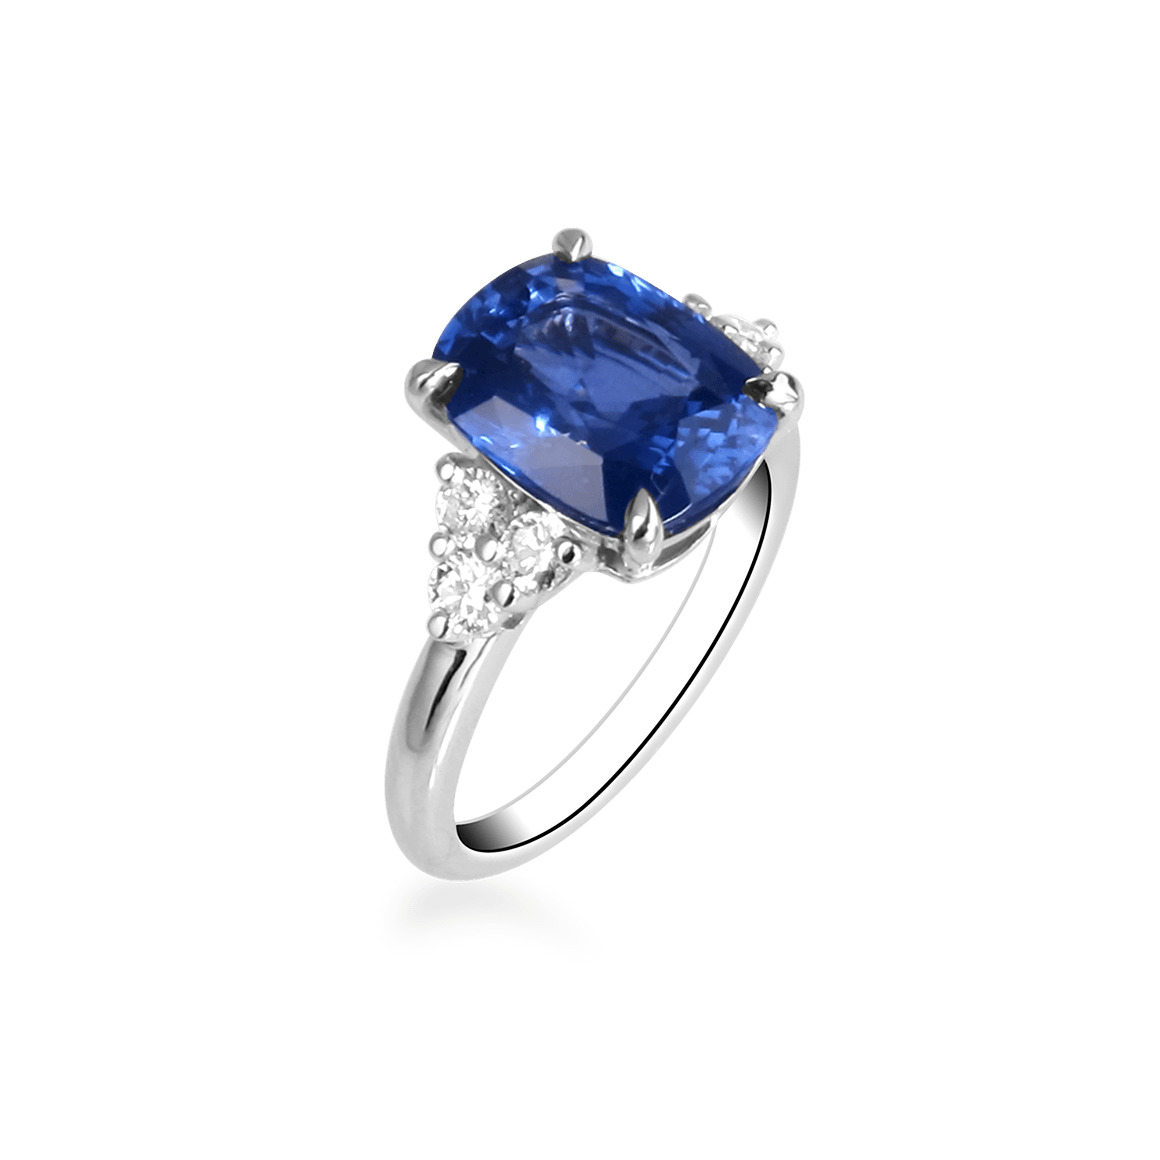 Blue Diamond Weding Rings Set 09 - Blue Diamond Weding Rings Set